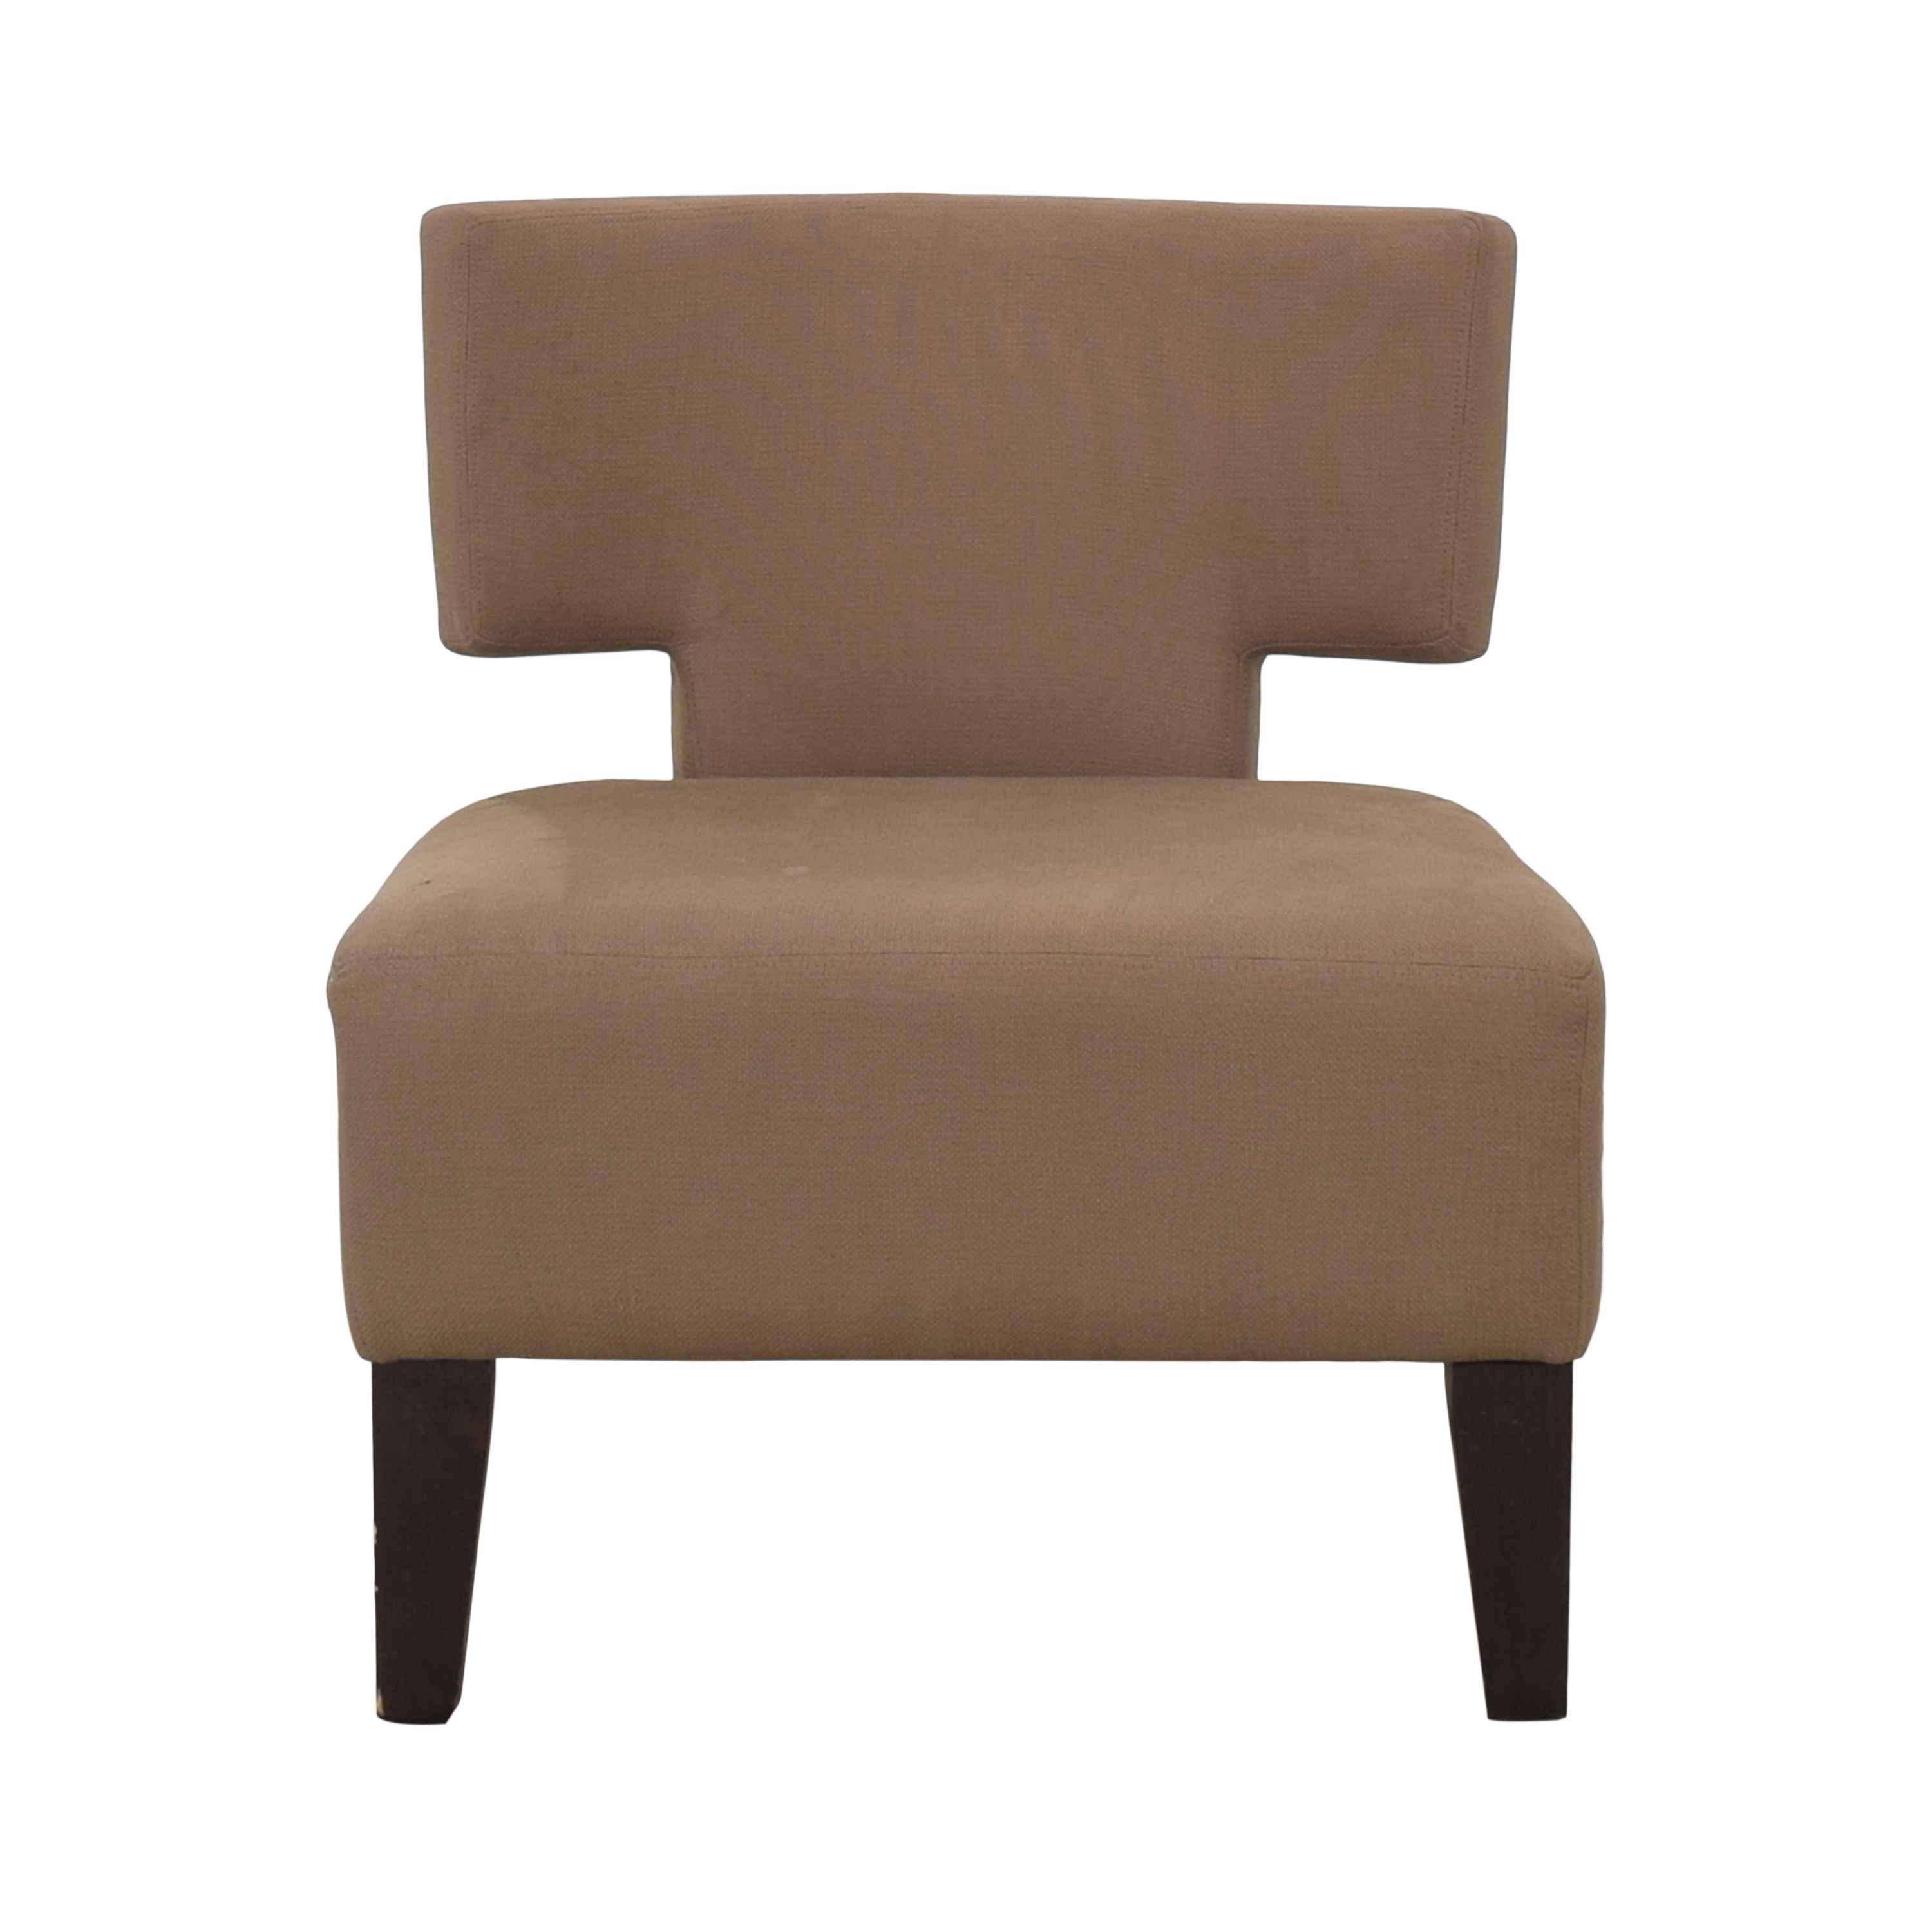 West Elm West Elm Geometric Lounge Chair second hand